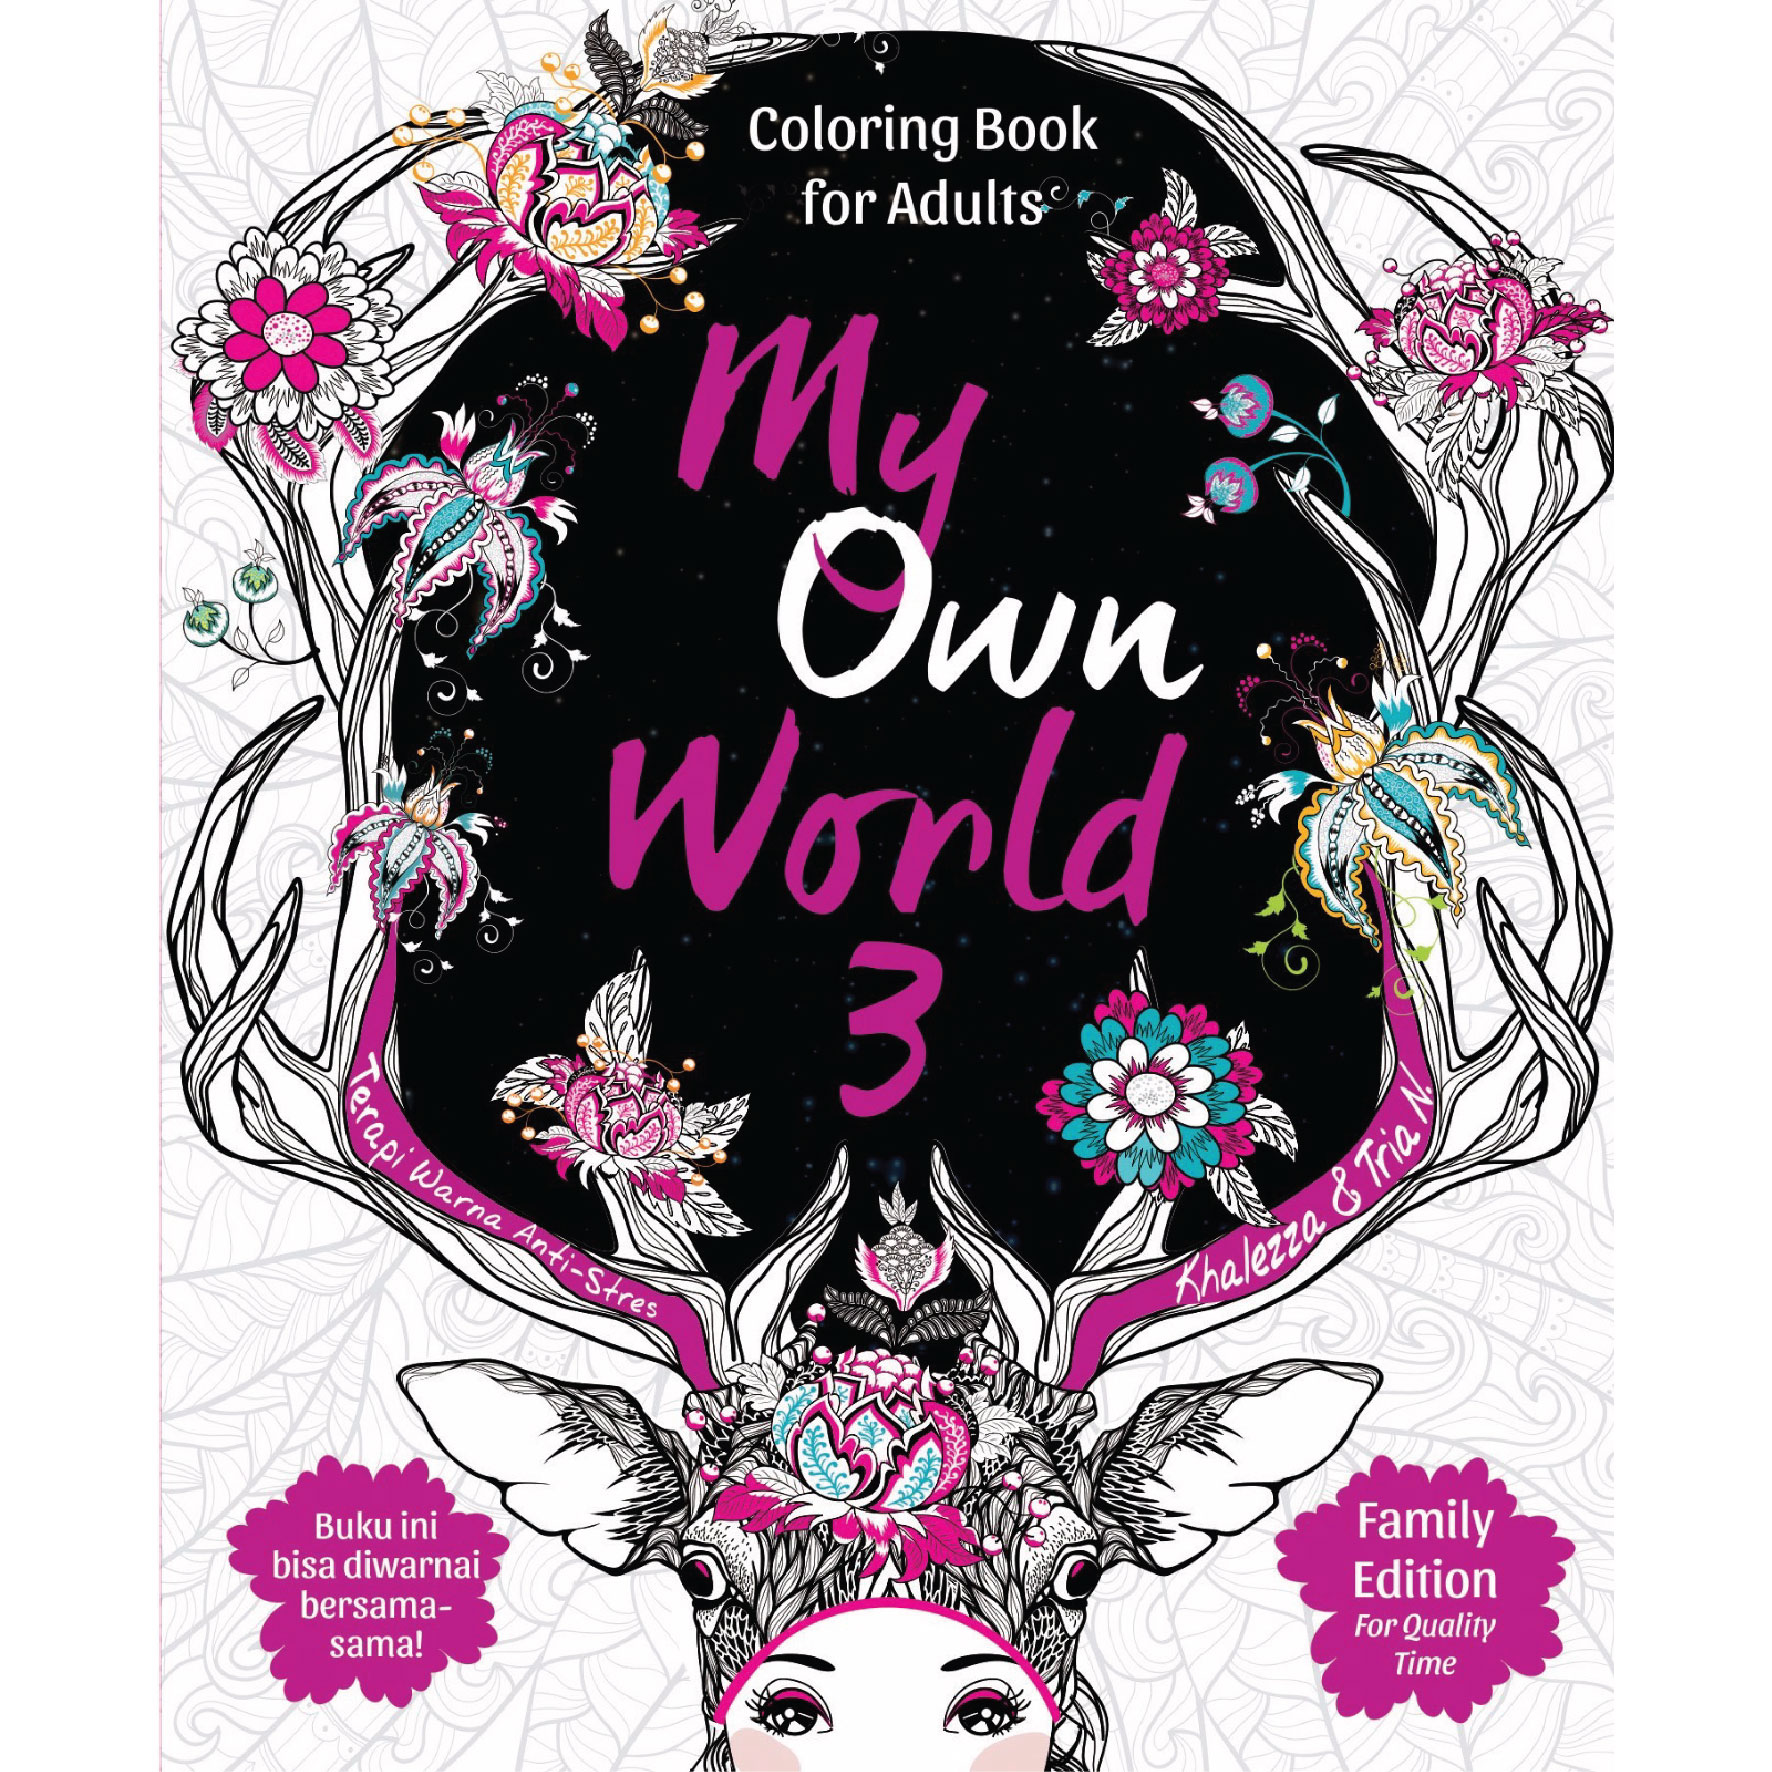 My Own World 3 Coloring Book For Adults Terapi Warna